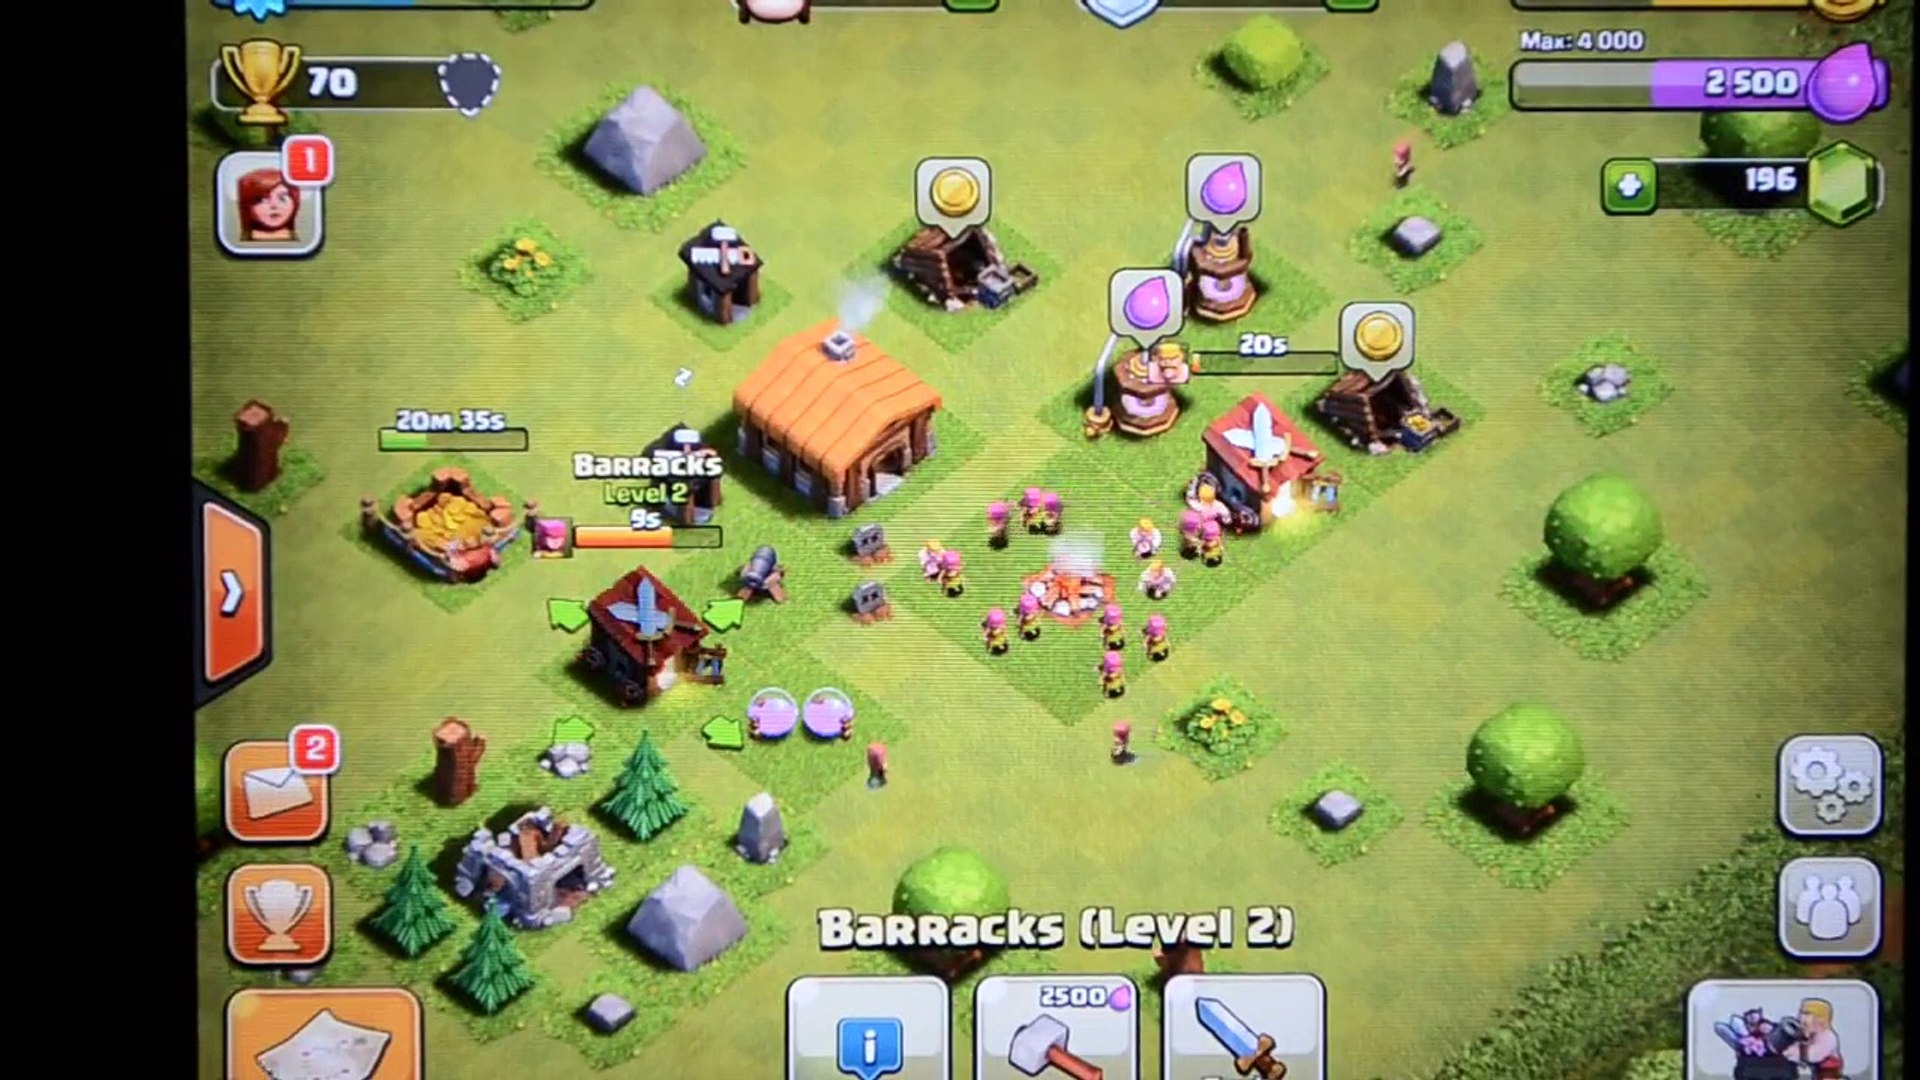 Clash of Clans- Fastest Way to 2000 Trophies / Trophy Farming Guide. Grind from 0-2000 Trophies!